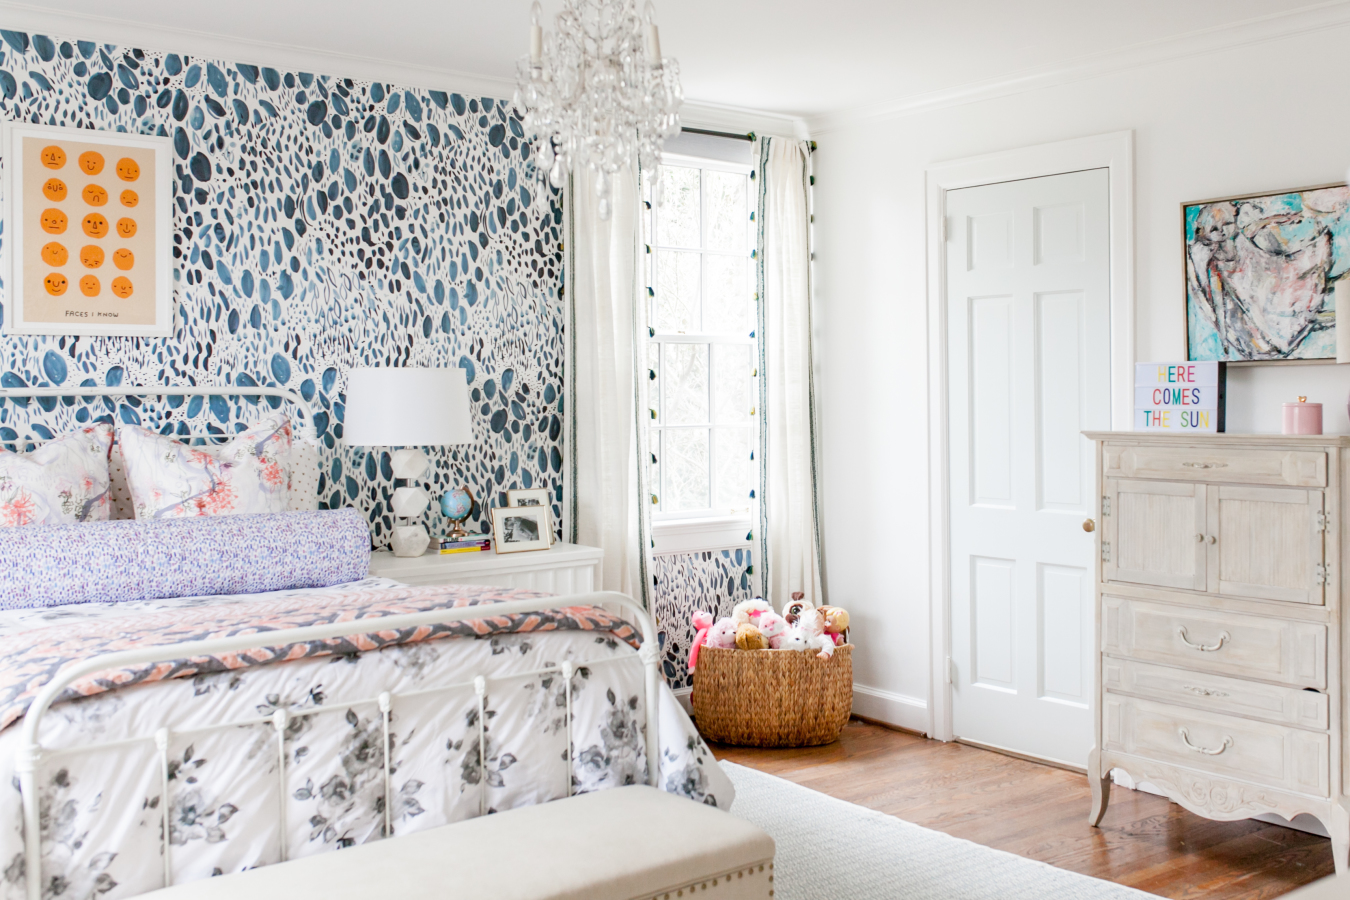 5 Steps To Mixing Patterns A Child 39 S Play Interior